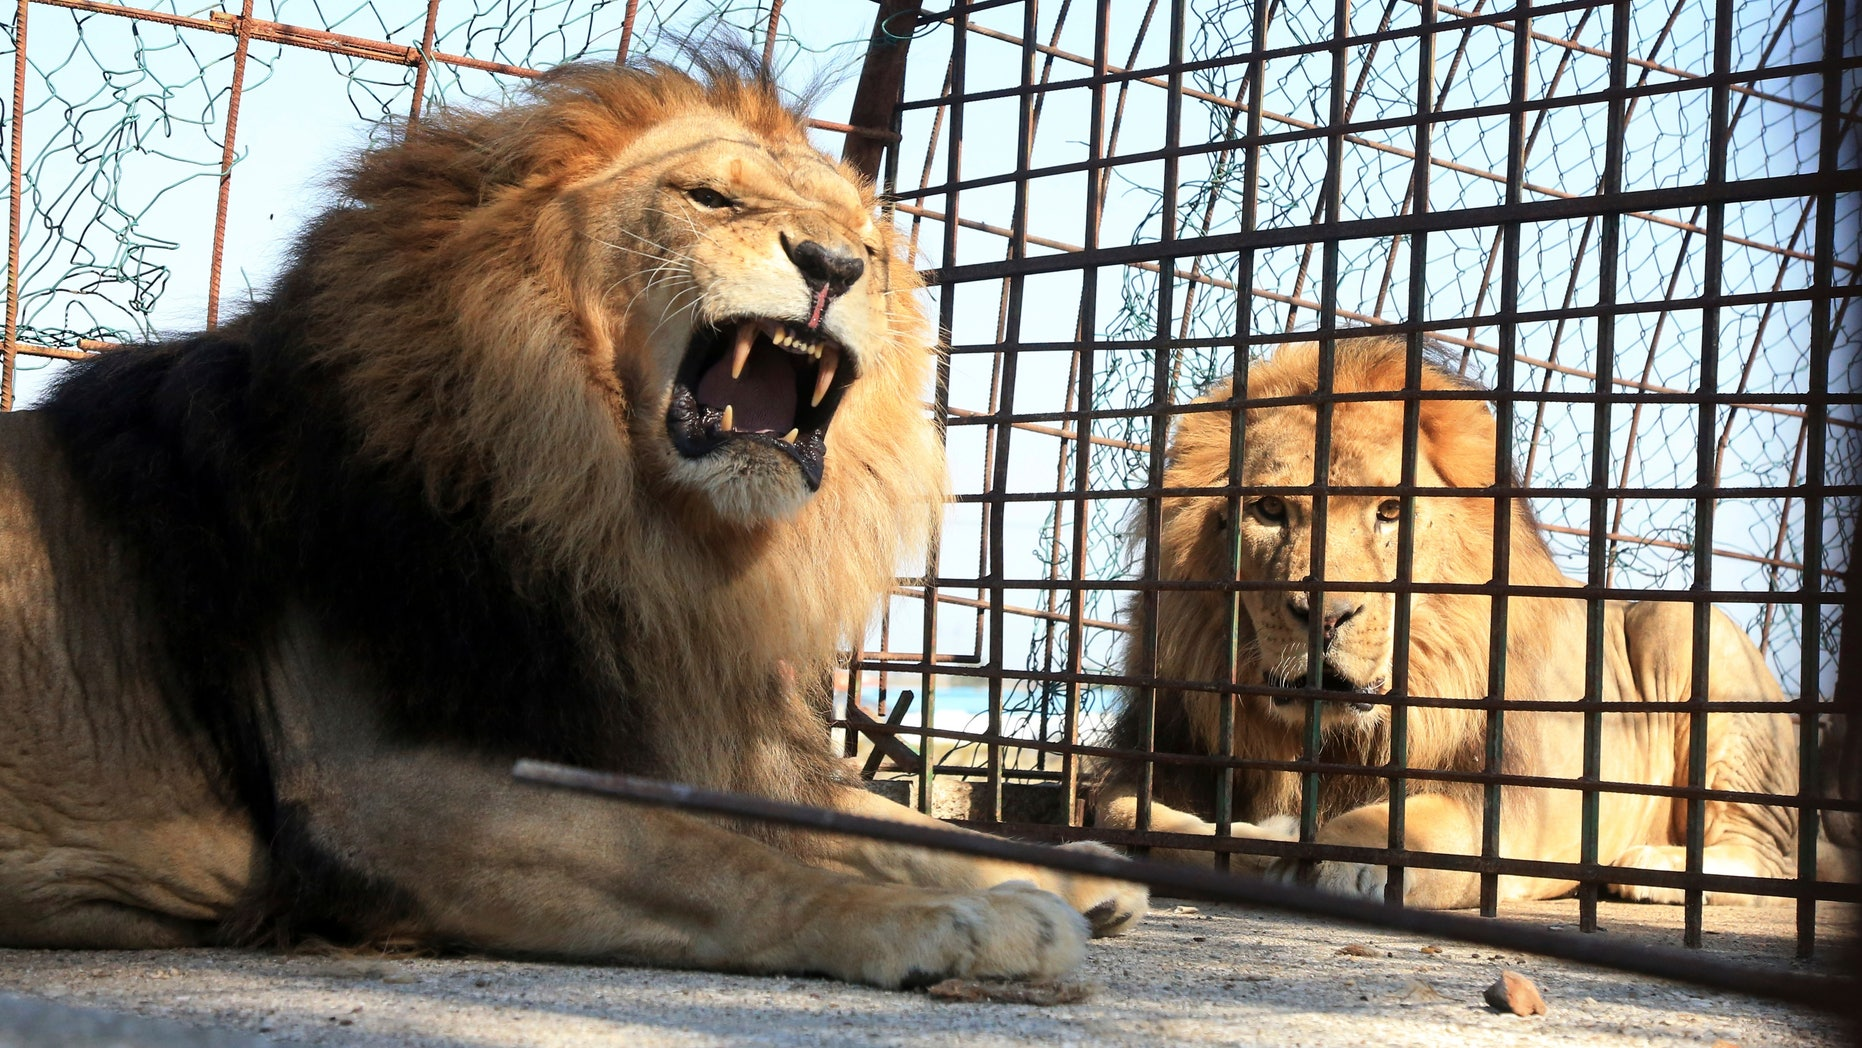 Lions sit in their cage at Safari Zoo Park in Mbrostar, about 100 kilometers (60 miles) south of Tirana, Thursday, Oct. 18, 2018. Albanian authorities have temporarily blocked the operation of the private zoo park, after the malnourishment of some lions and zebras. (AP Photo/Hektor Pustina)